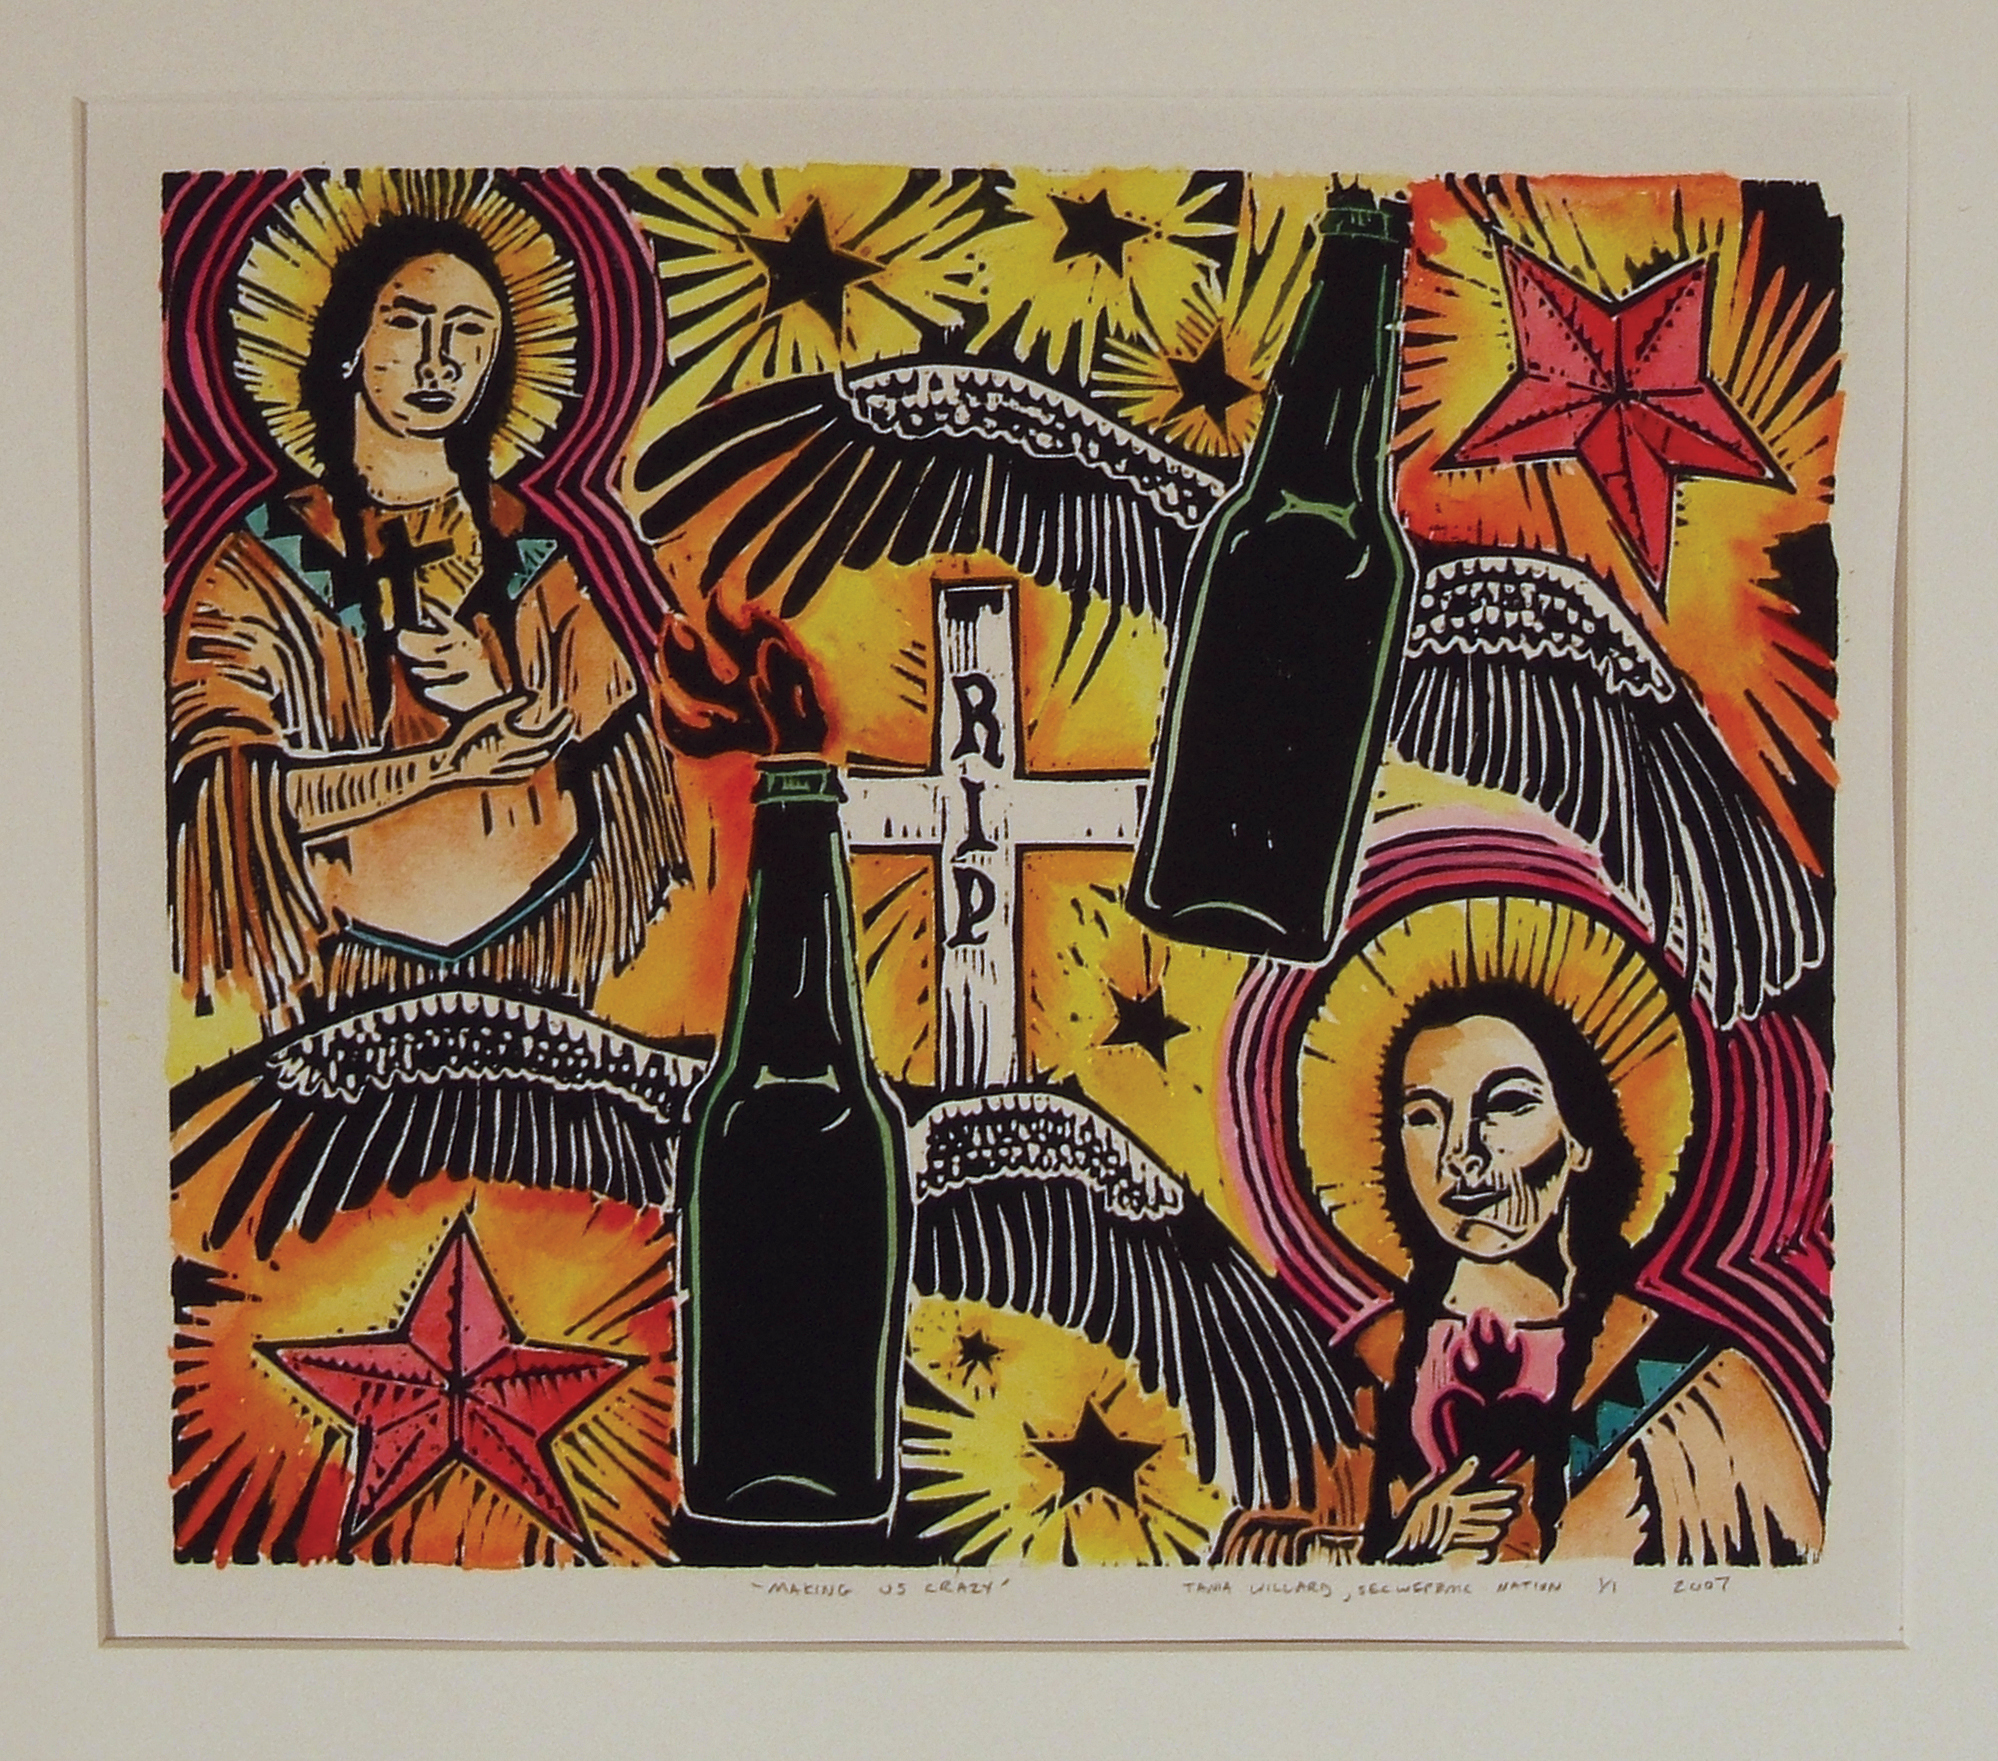 multi-coloured print with religious symbols, gravemarker, bootles, wings and stars